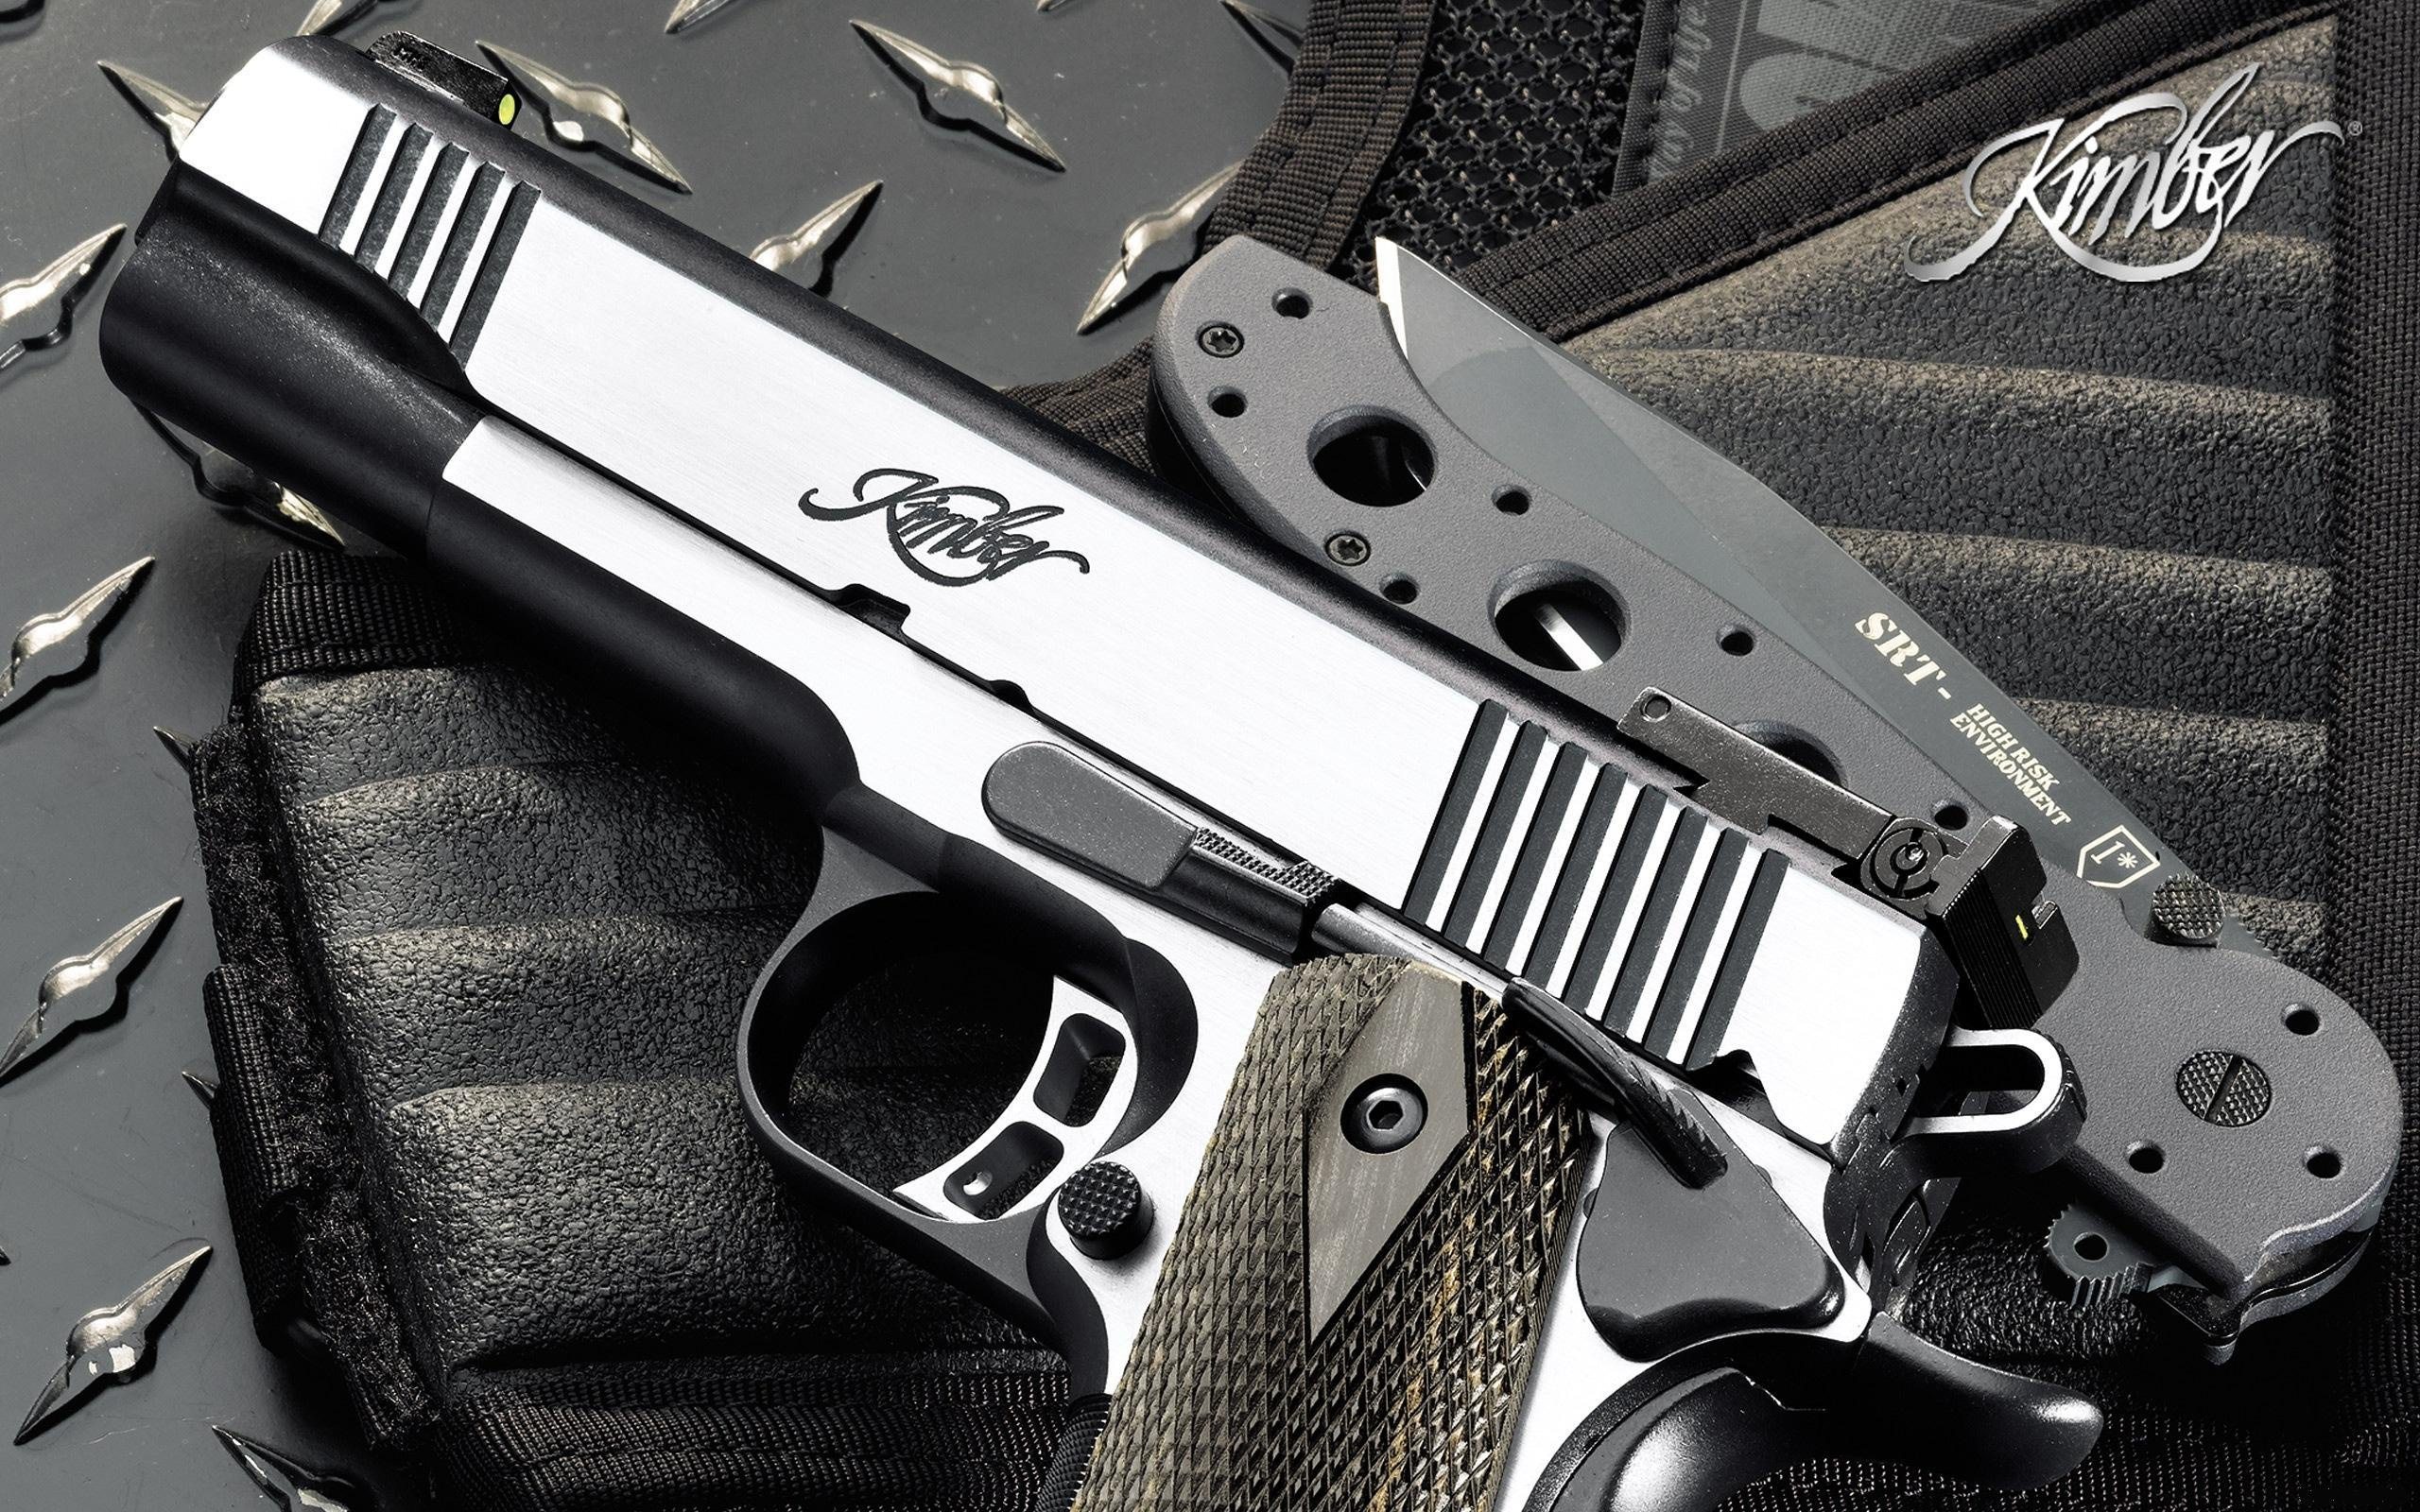 Kimber Pistol Pics, Weapons Collection